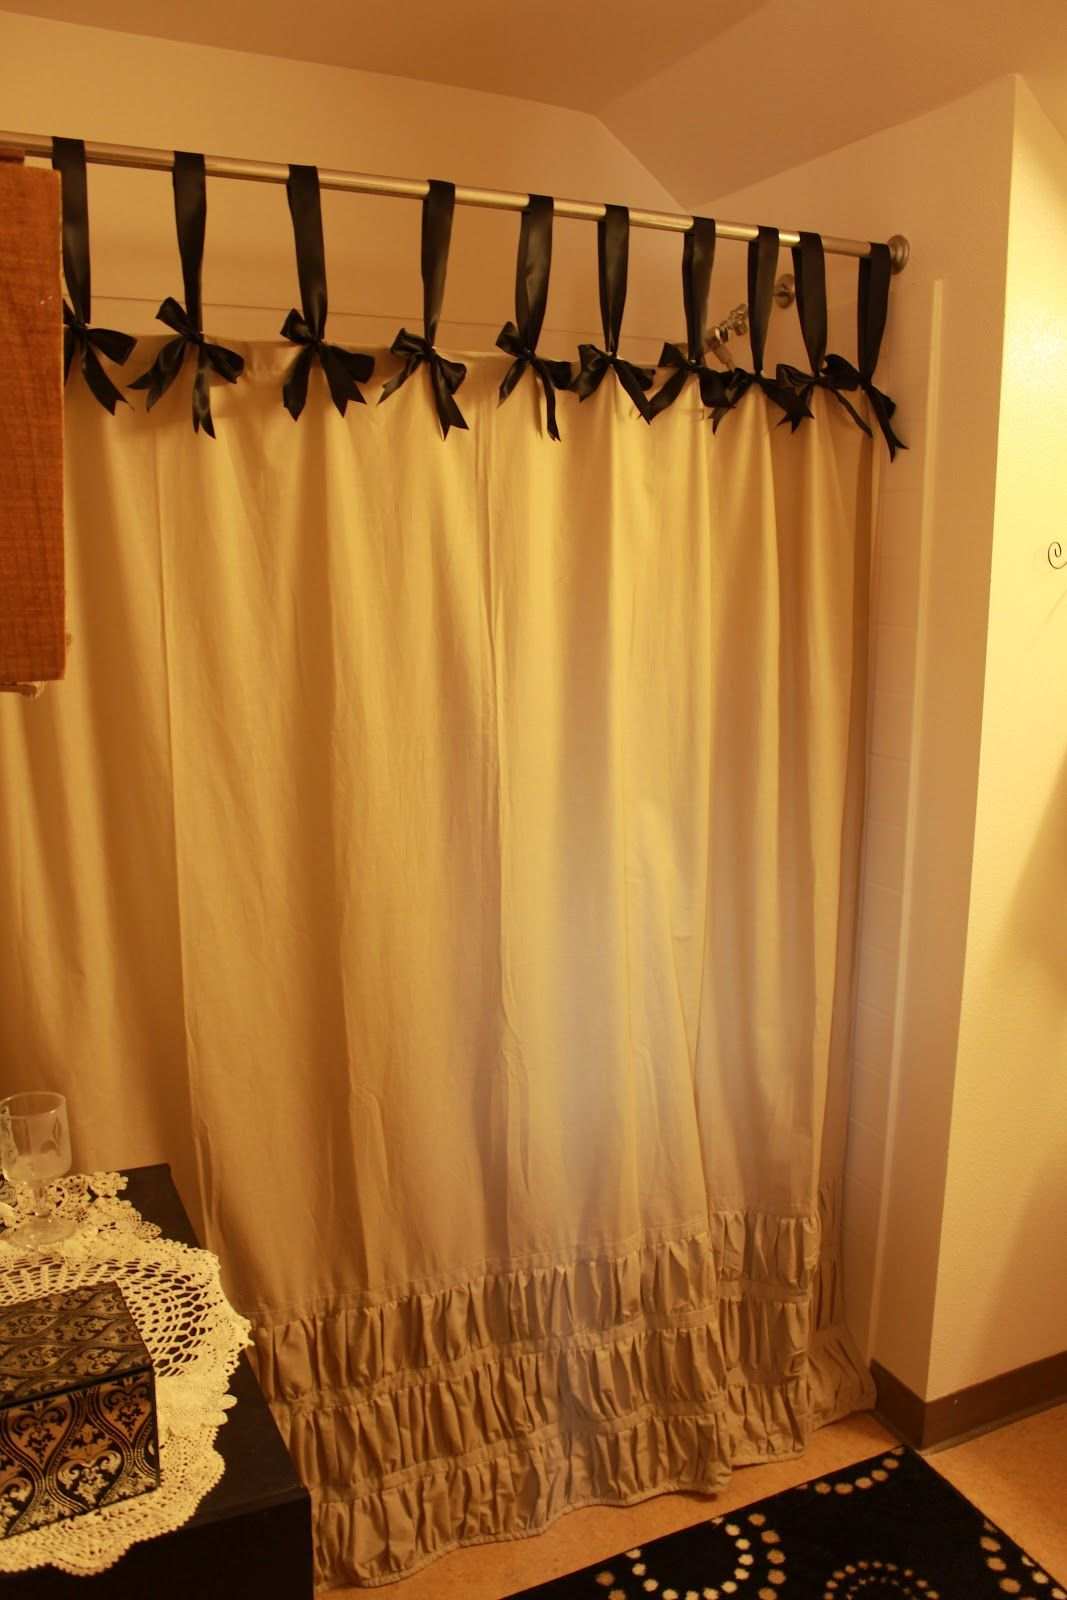 Diy black ribbon curtain ringsalso if you need to